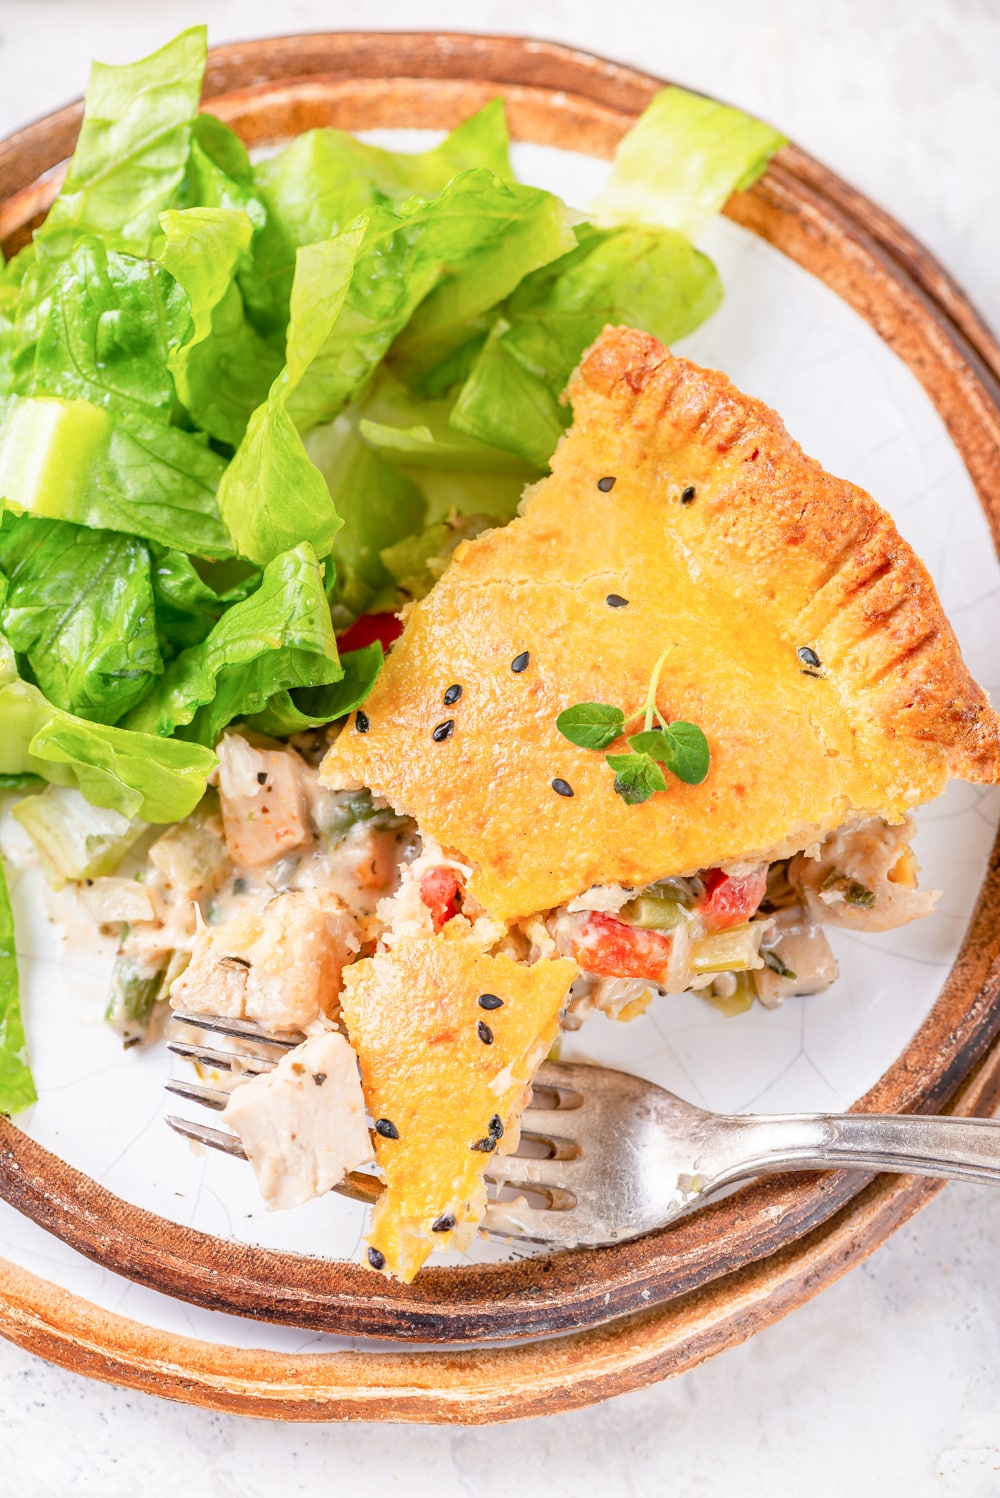 A slice of chicken pot pie on a plate with a salad next to it.